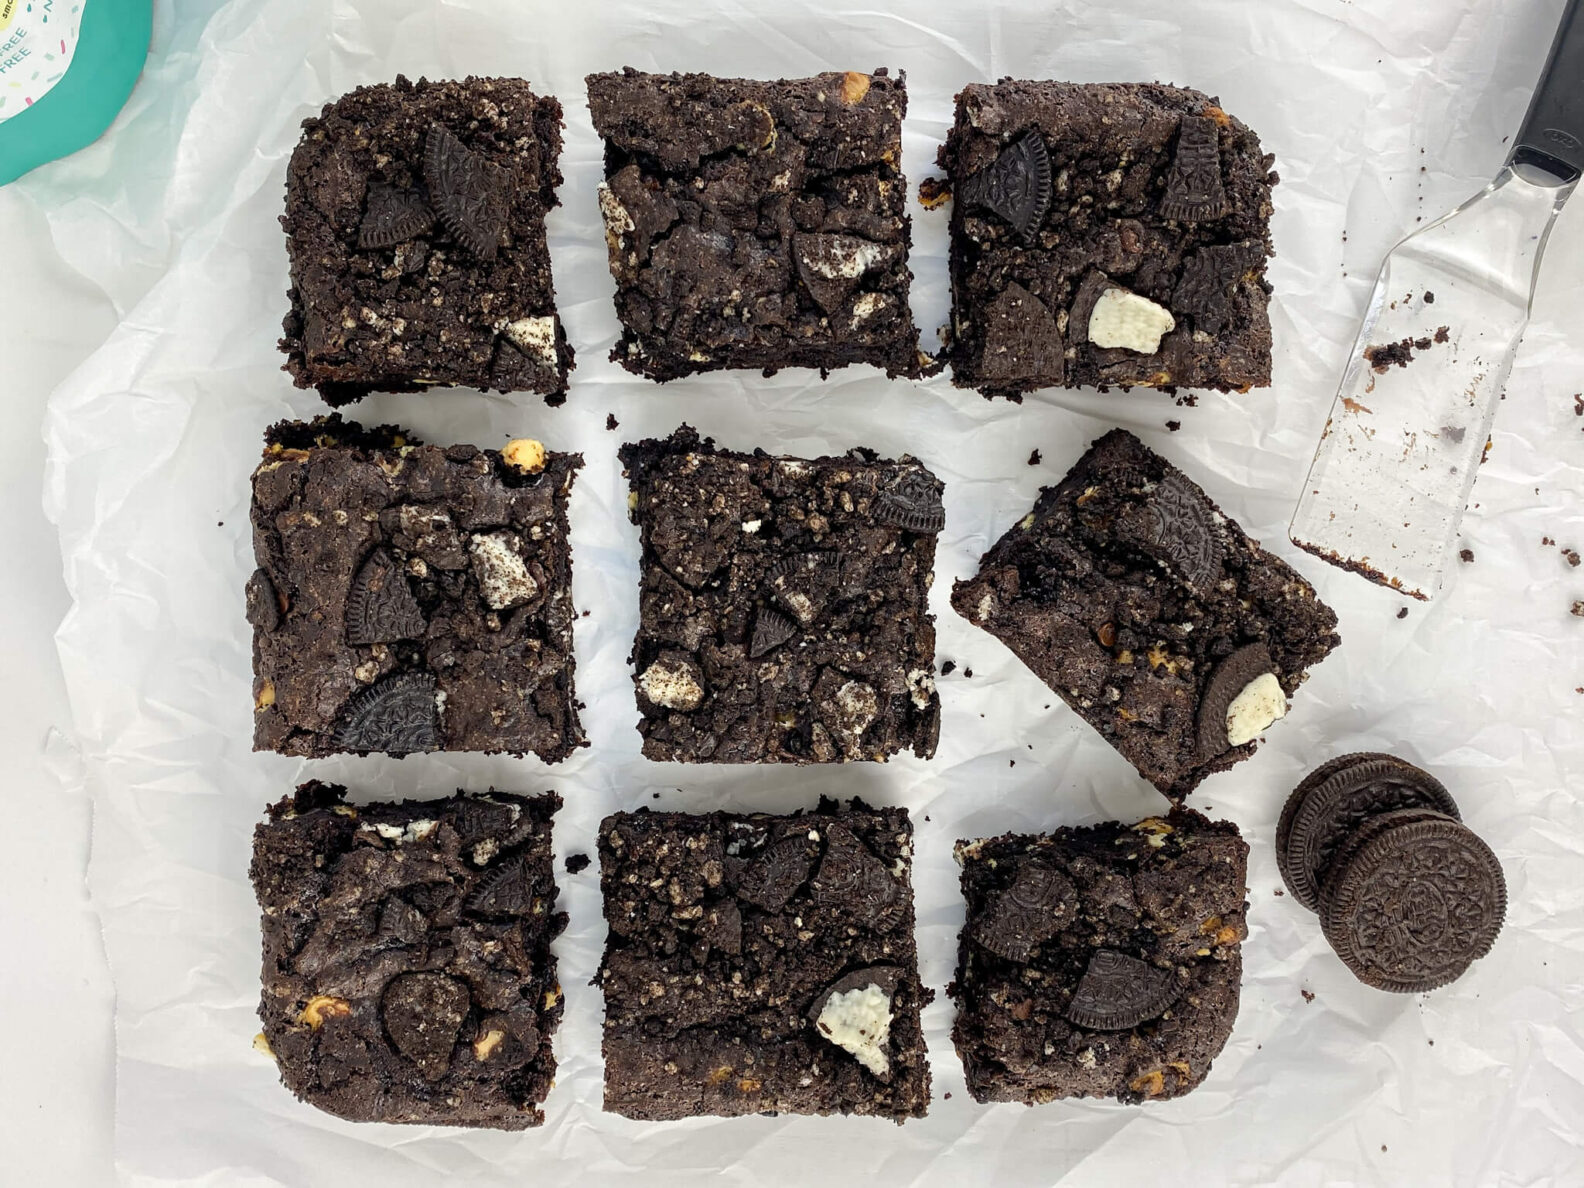 Kate's Safe and Sweet - Chocolate Sandwich Cookie Brownies Top